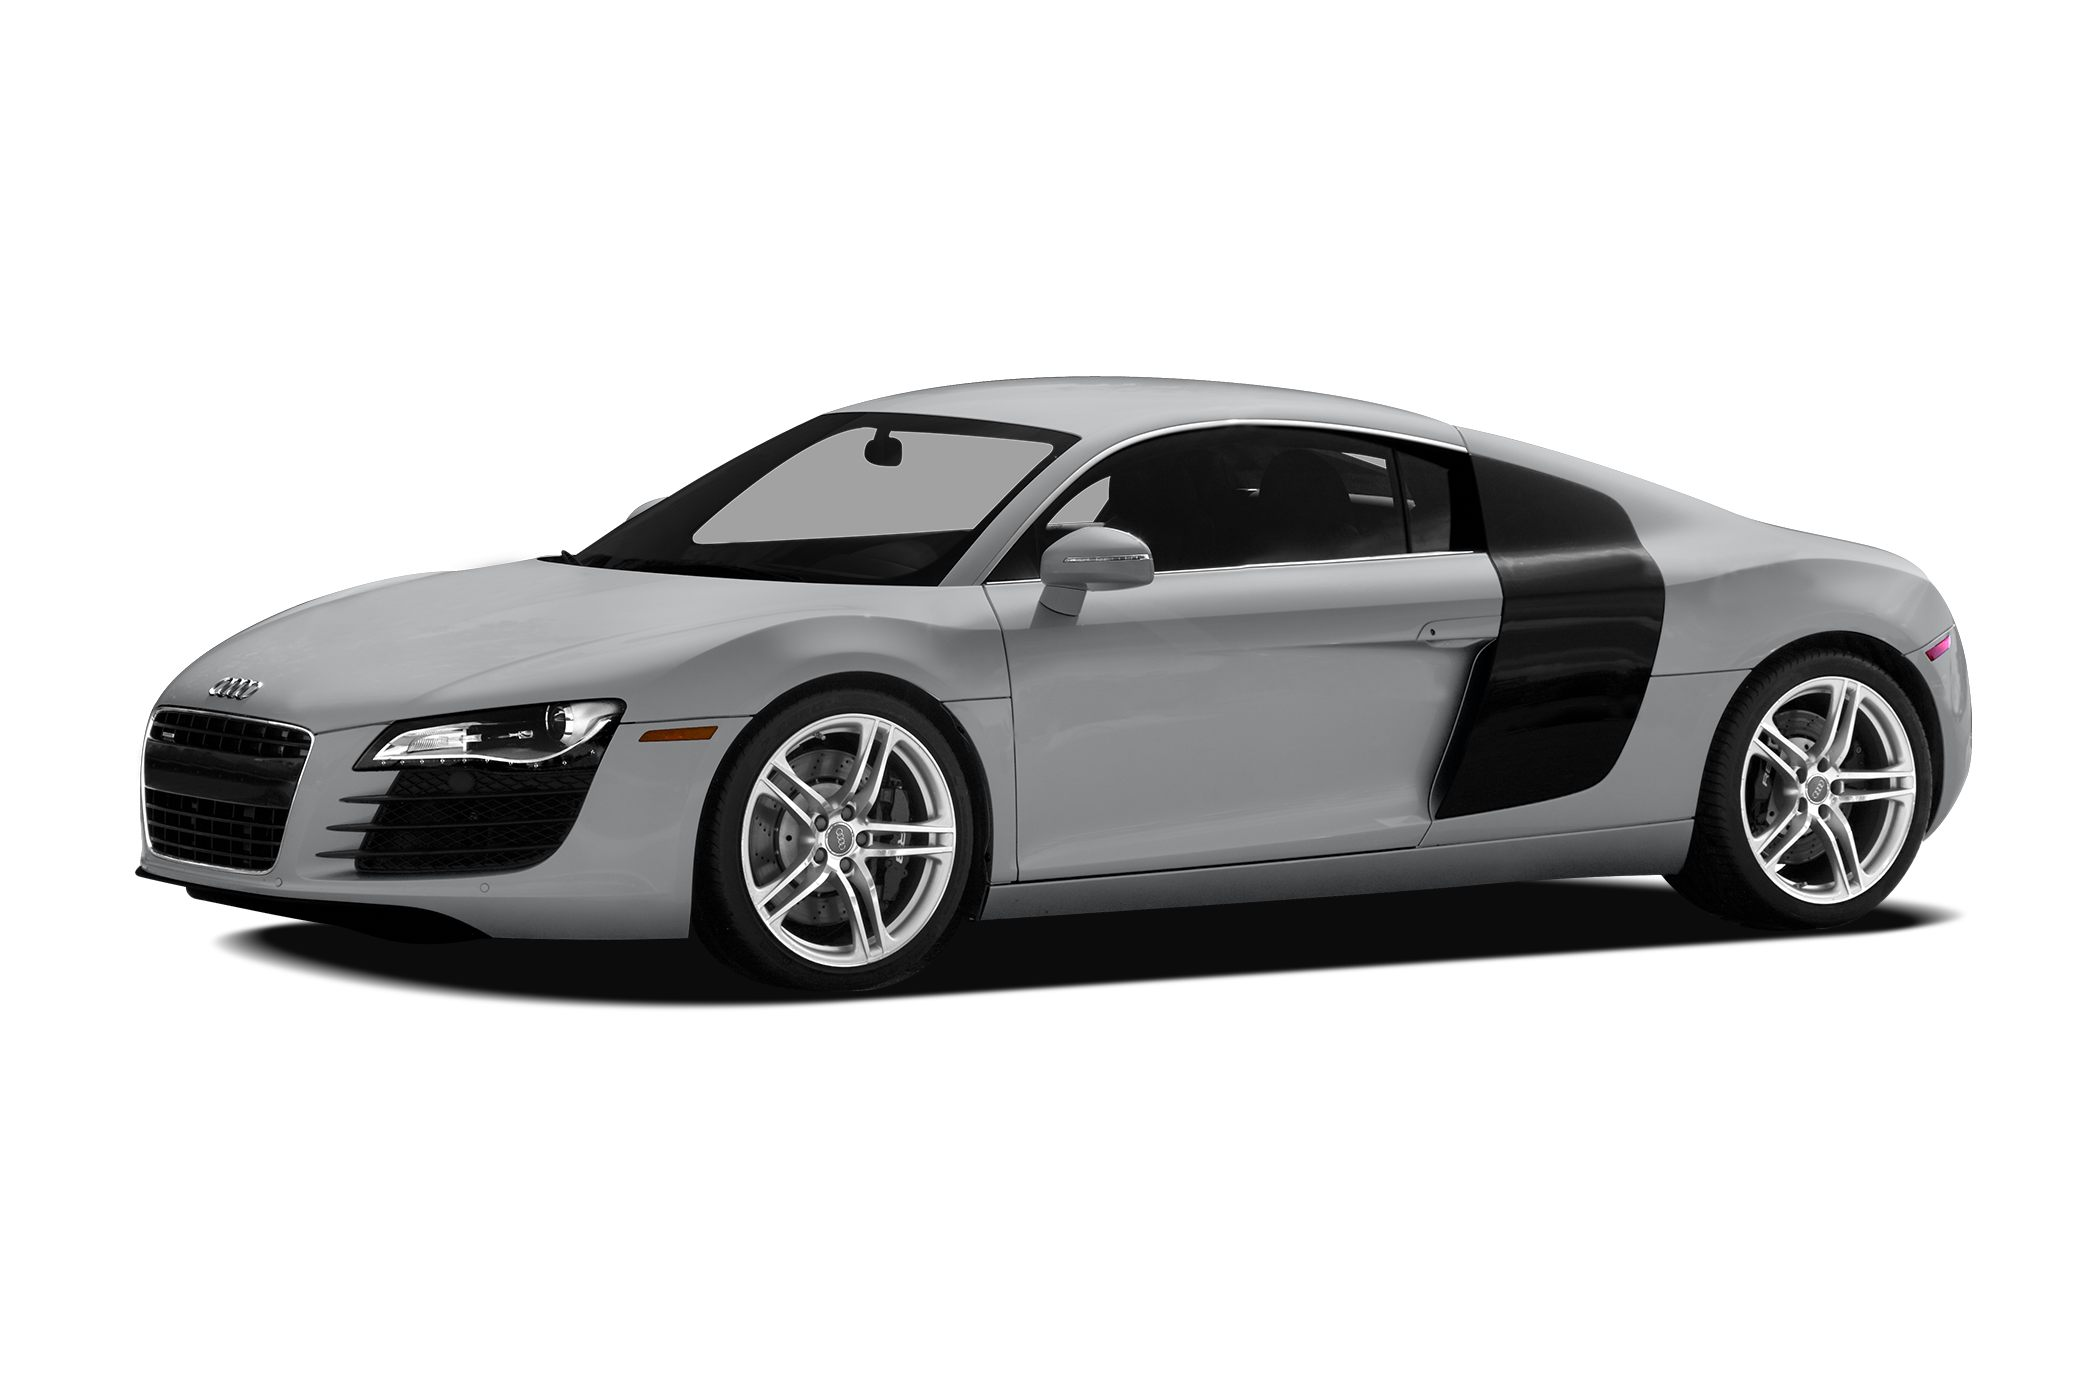 models shown price audi web european large en ca model canada